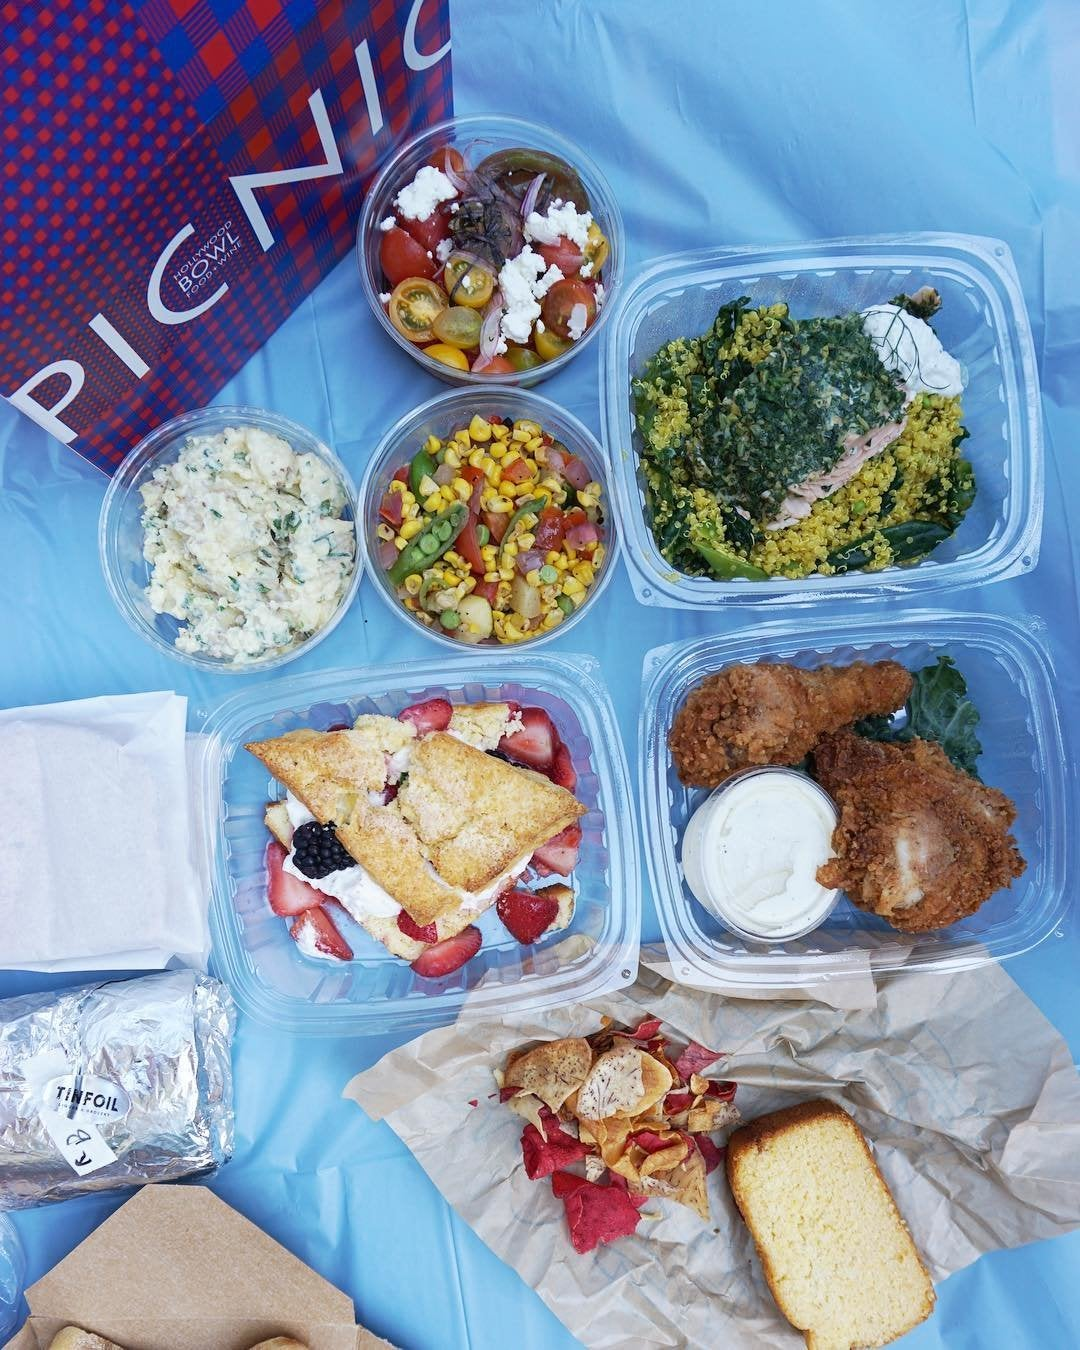 Picnic Box from Lucques Group at the Hollywood Bowl